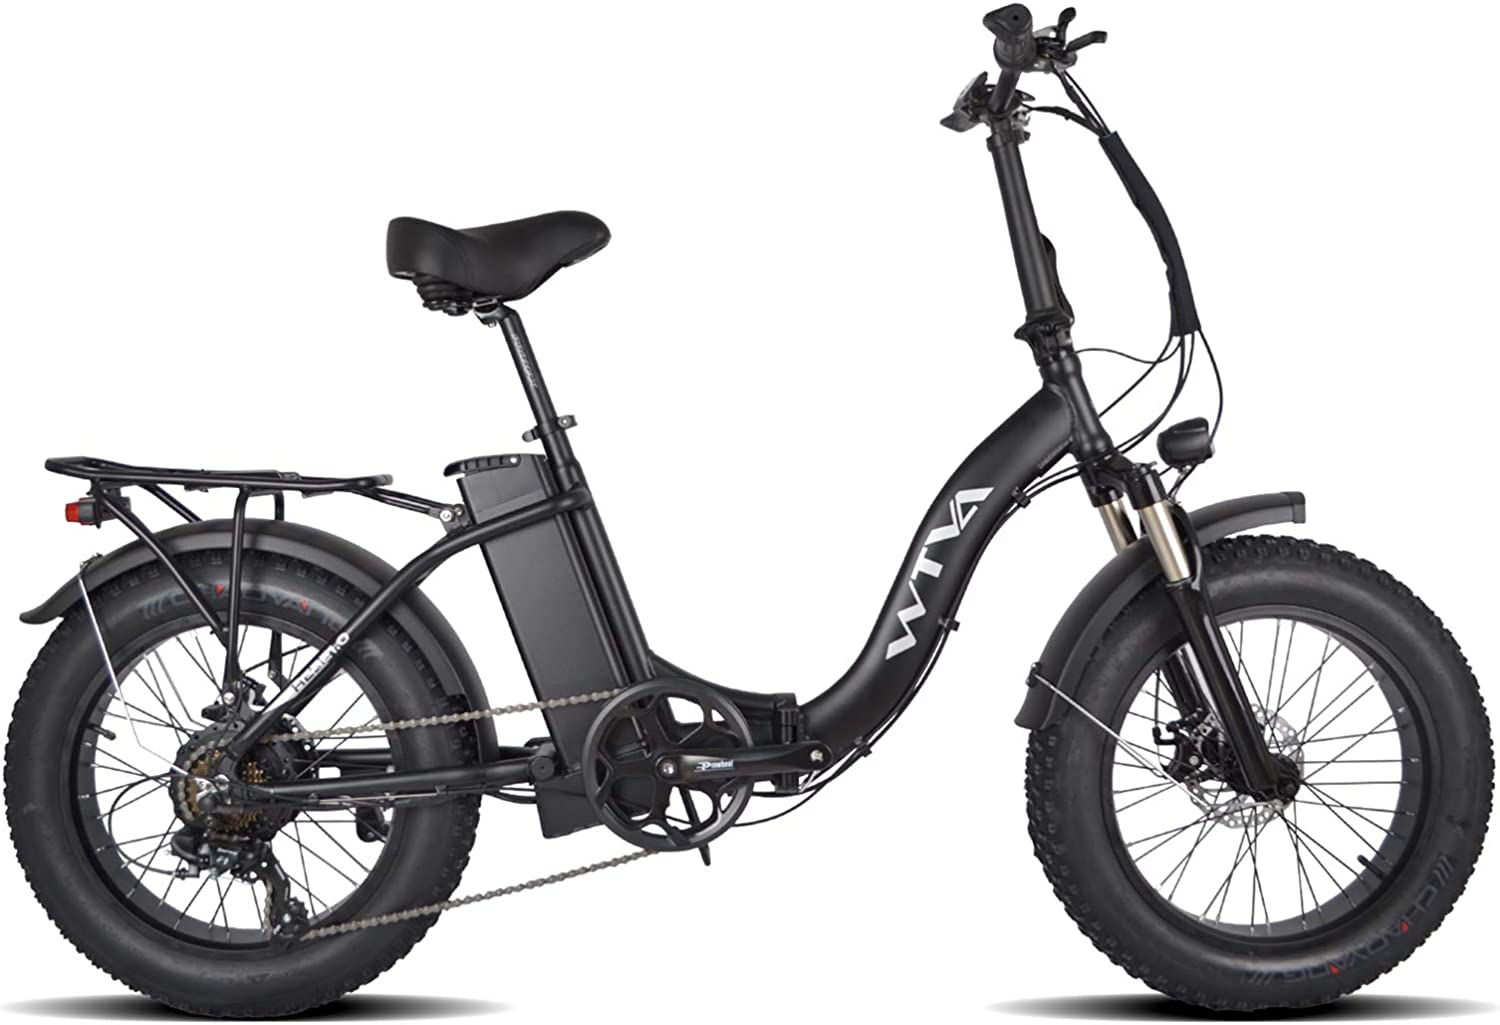 online shop 750W Folding Electric Bike Los Angeles Mall Step Tire Fat Bicycl Through